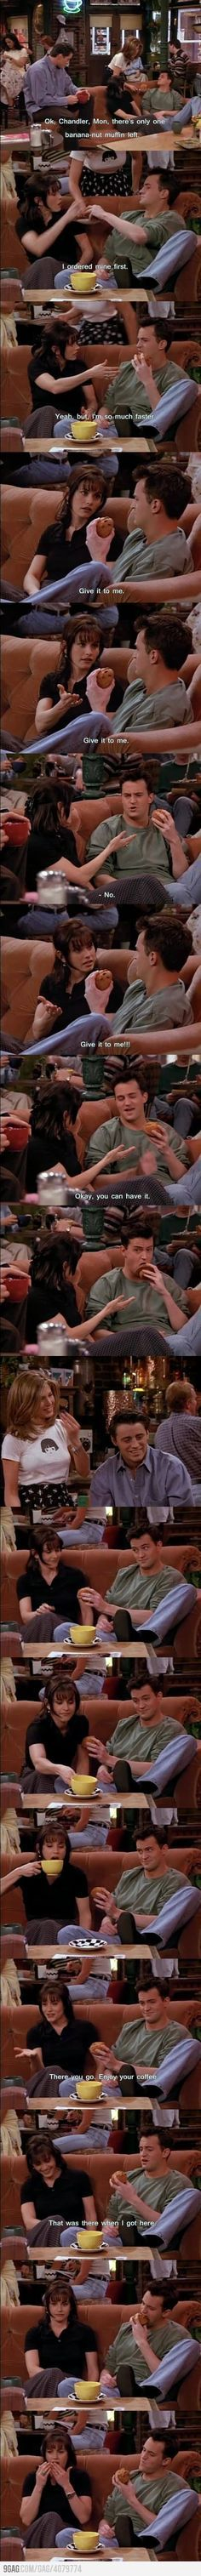 Monica and Chandler, the early years ~ Friends: Season 2, Episode 23 ~ The One With The Chicken Pox